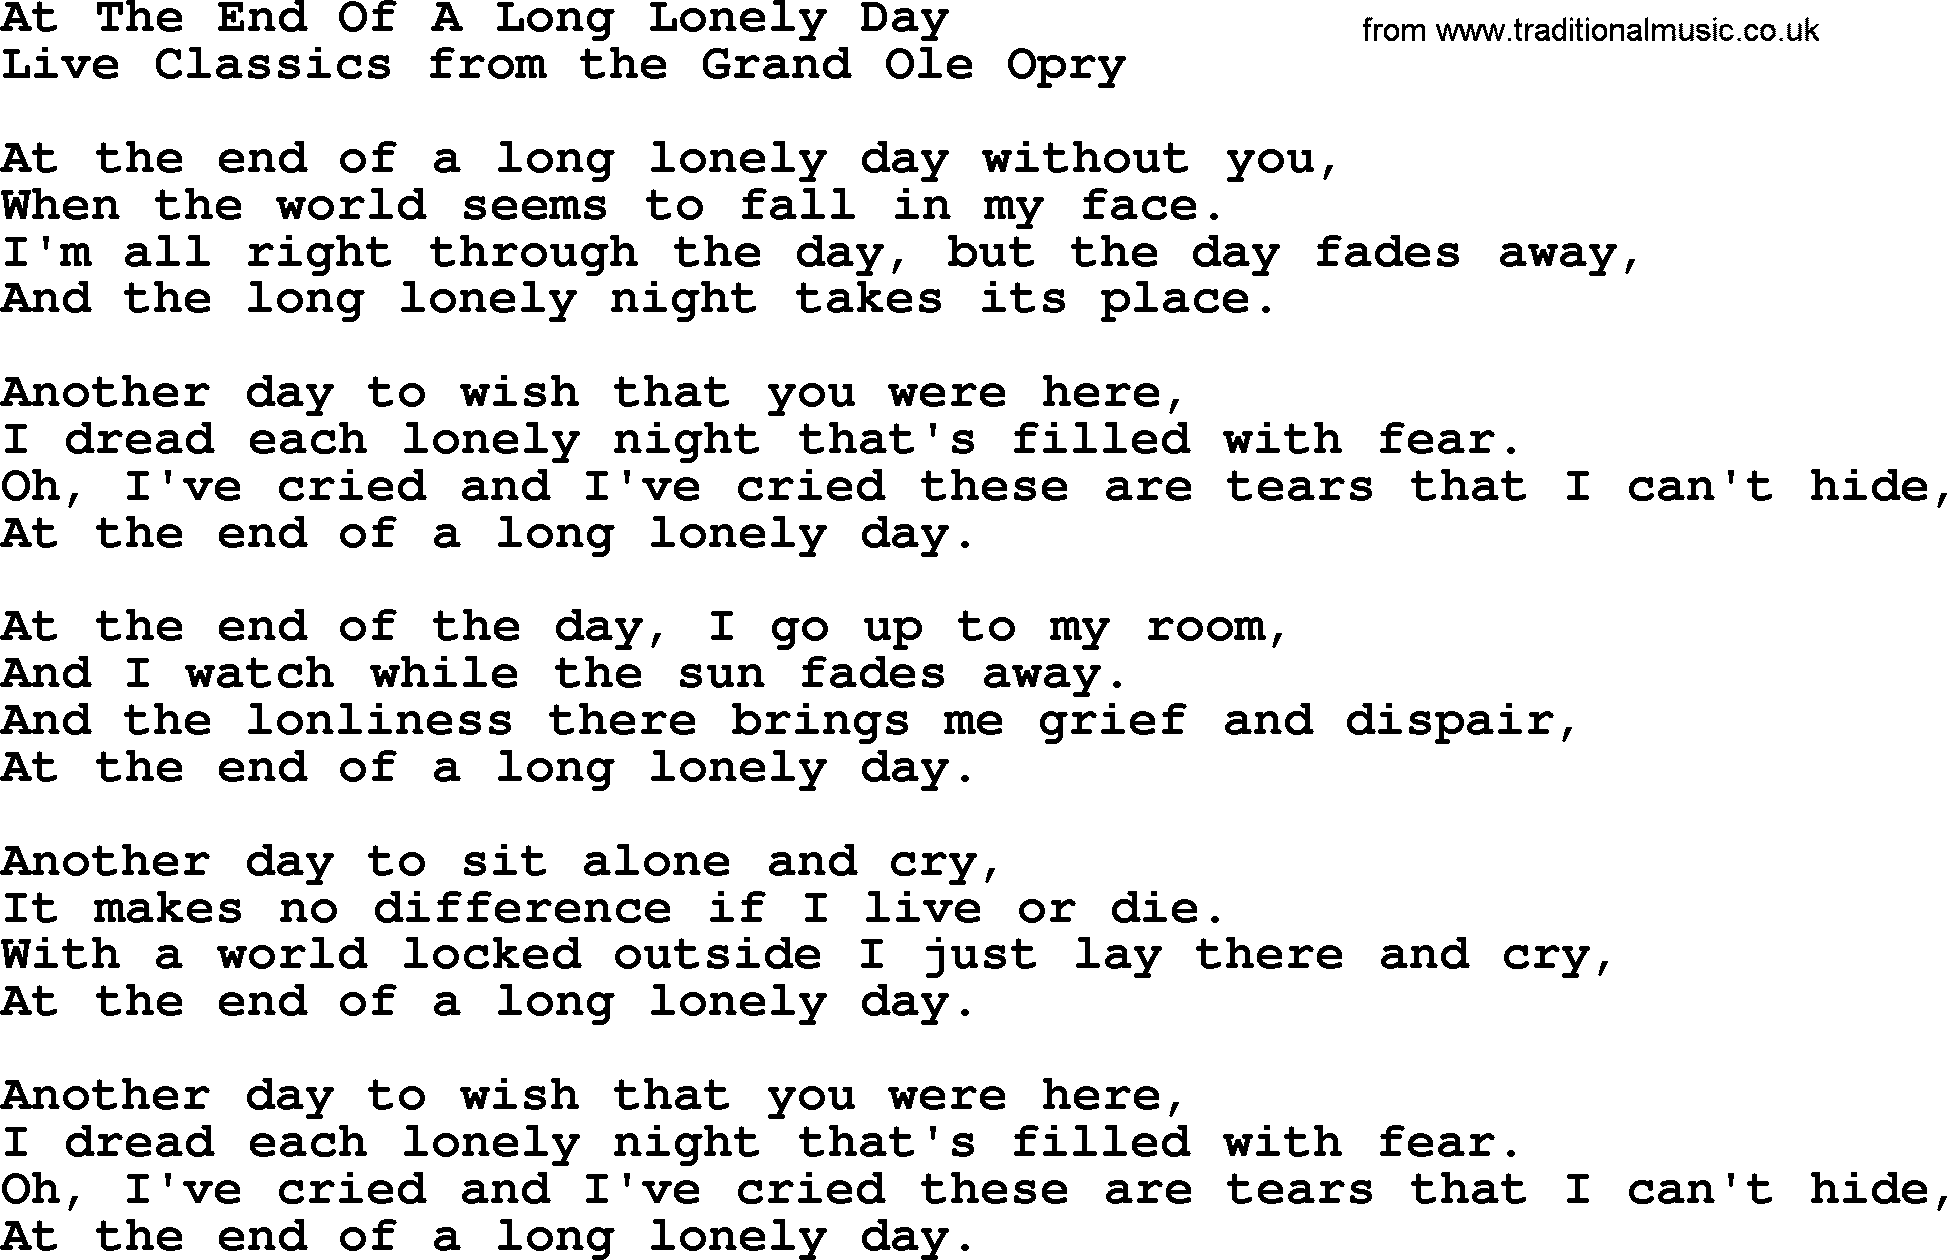 At The End Of A Long Lonely Day, by Marty Robbins - lyrics